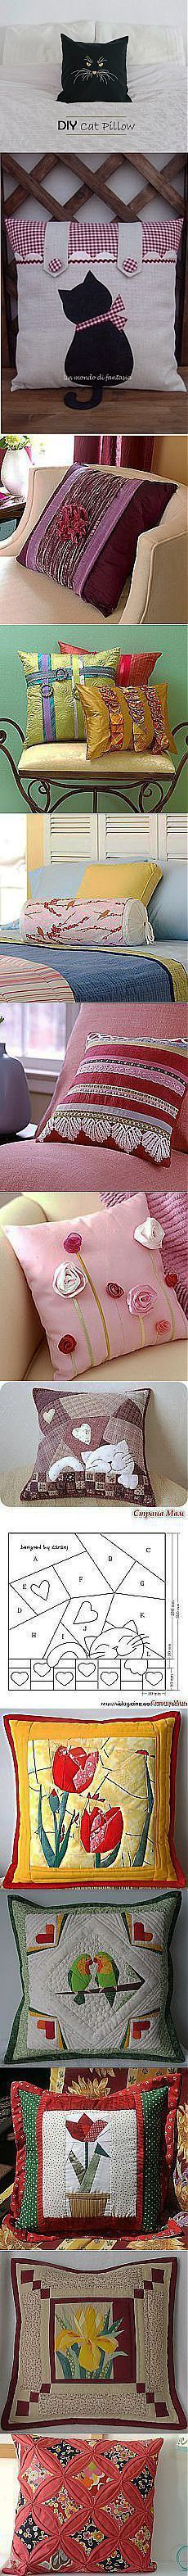 postila.ru Sewing Pillows, Diy Pillows, Decorative Pillows, Cushions, Quilt Patterns, Sewing Patterns, Sewing Crafts, Sewing Projects, Patchwork Pillow